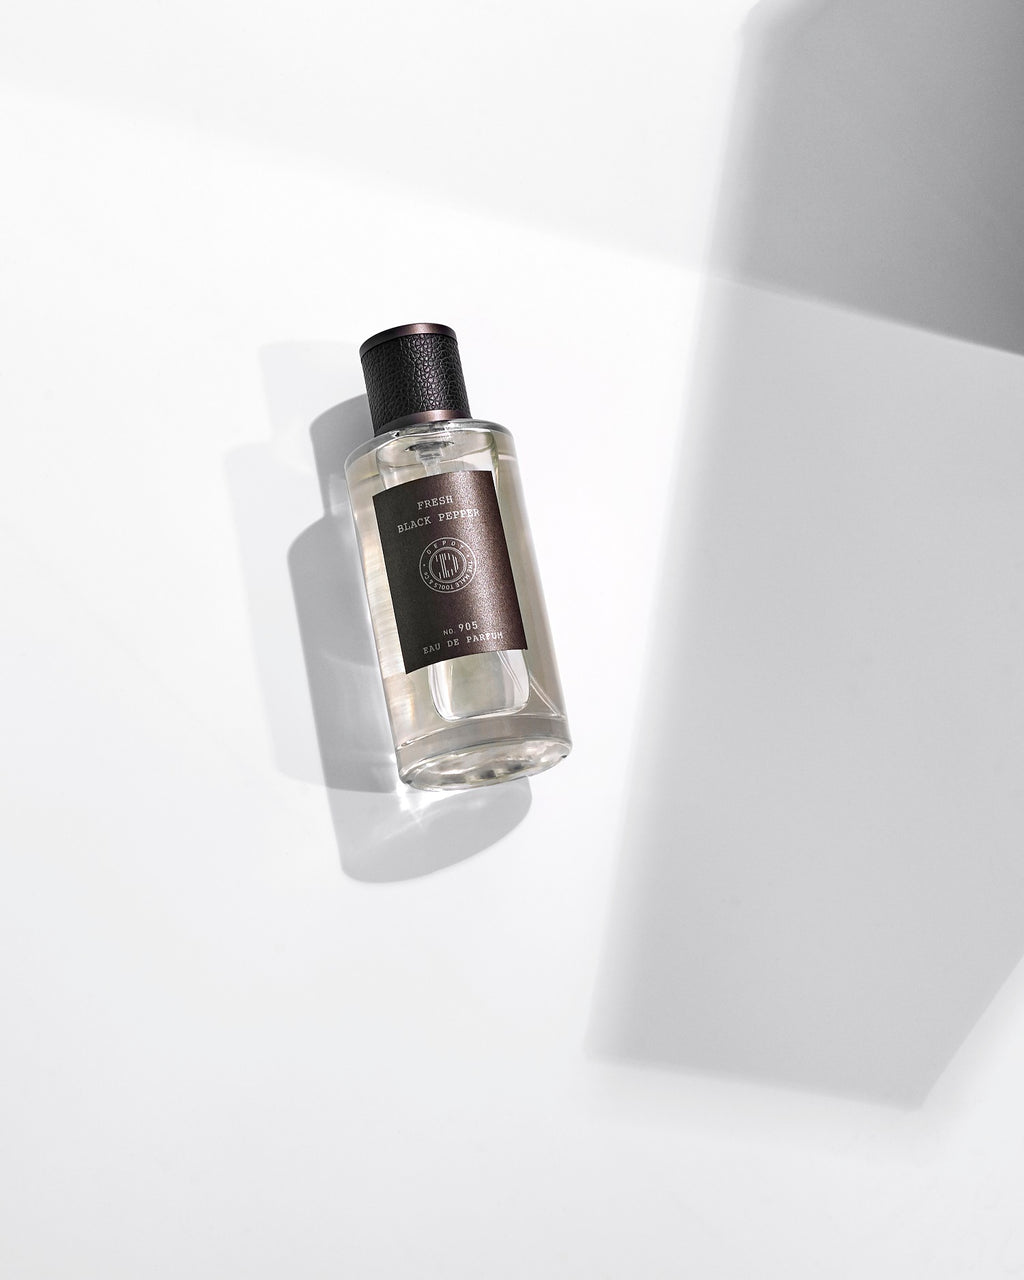 Depot - Eau de Parfum - Fresh black pepper - Ilmur